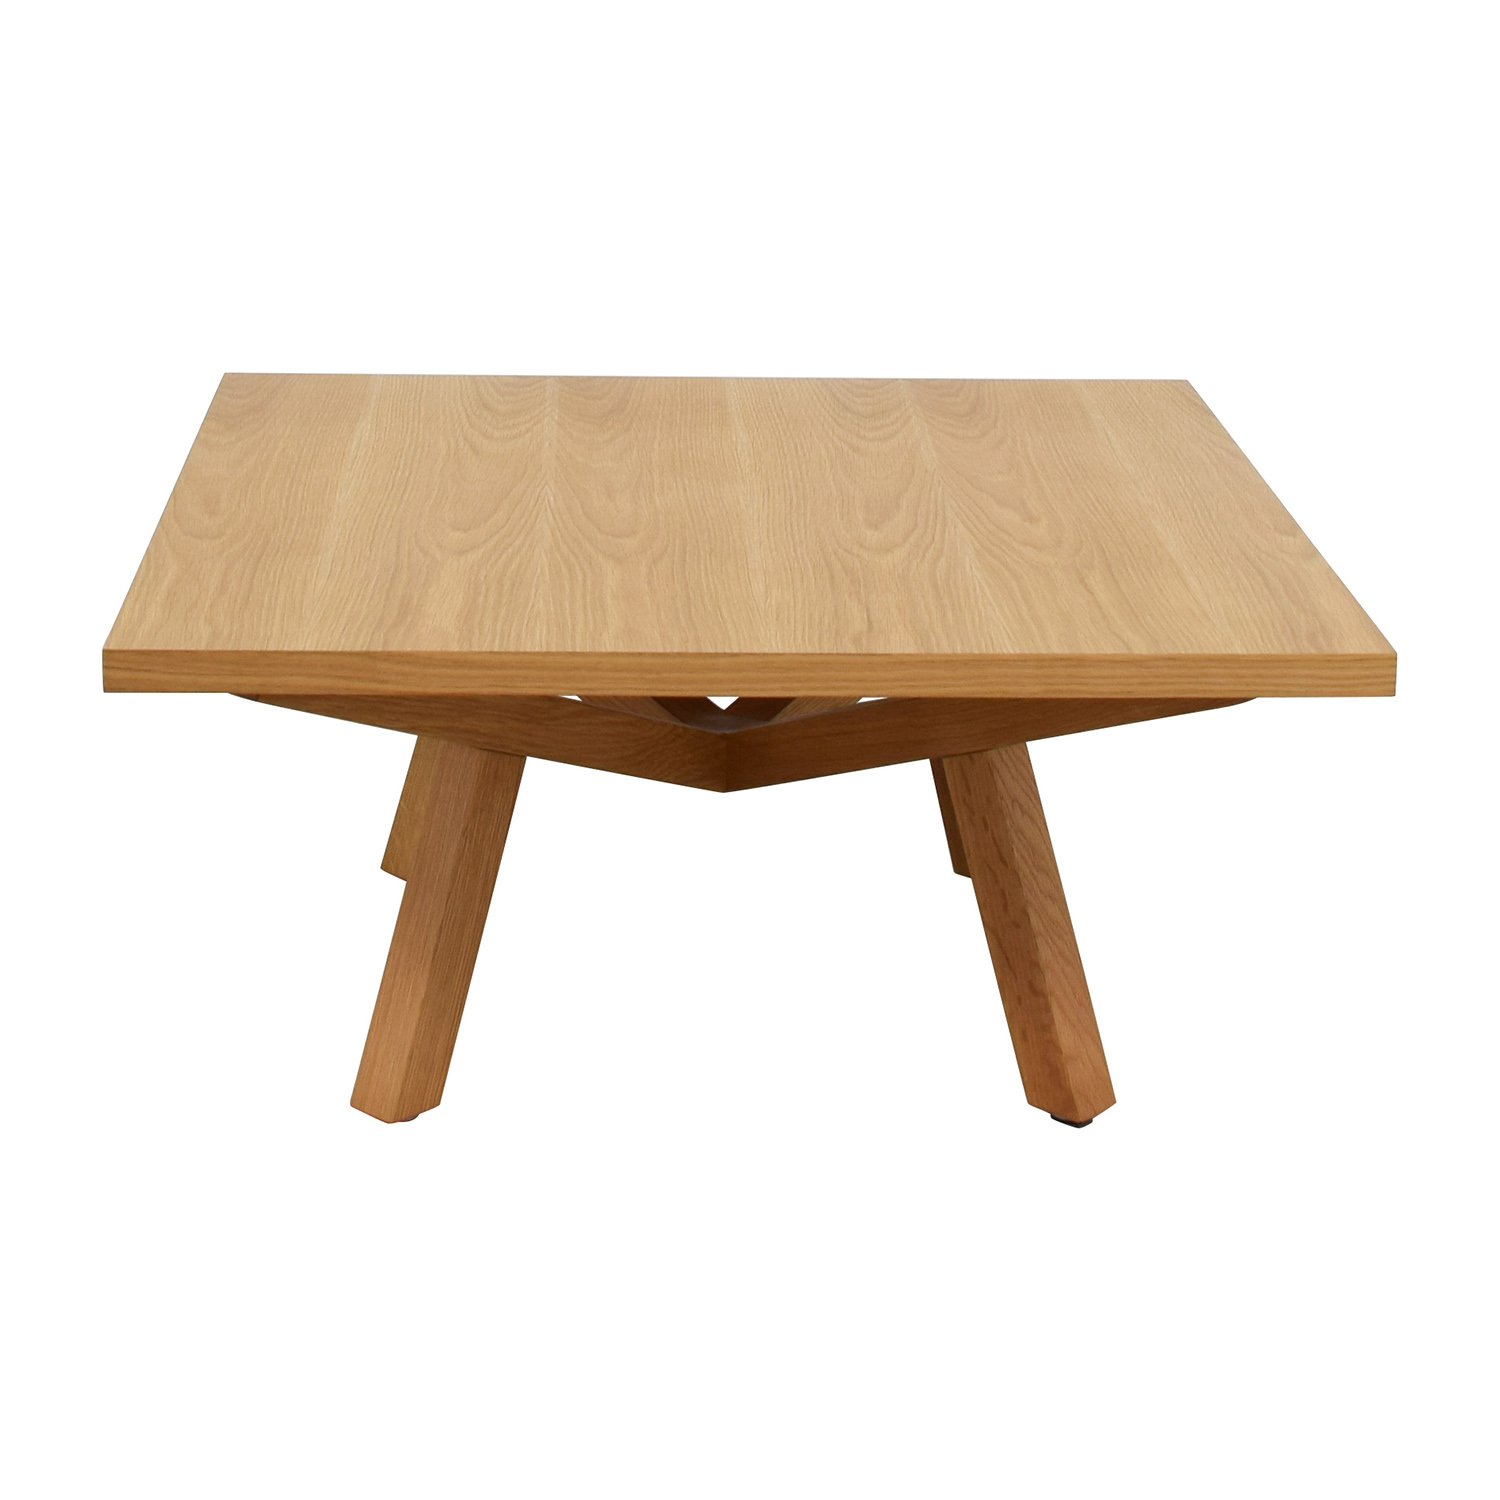 InMod InMod Sean Dix Forte Square Dining Table